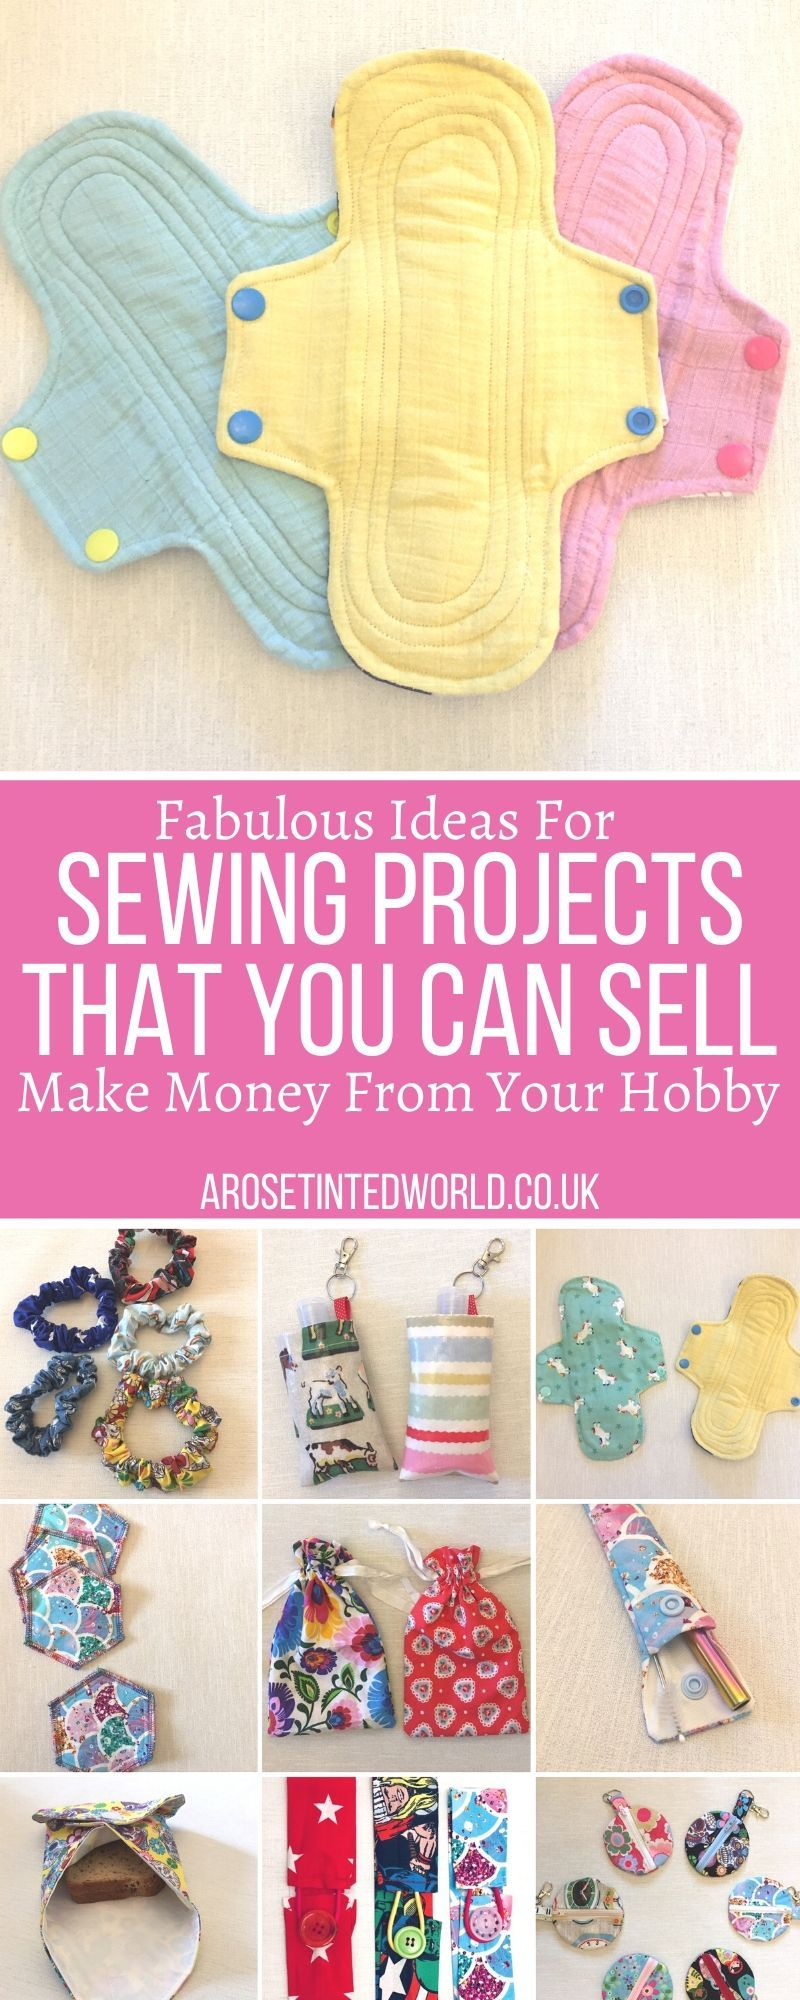 Sewing Projects That You Can Sell -   18 fabric crafts to sell gift ideas